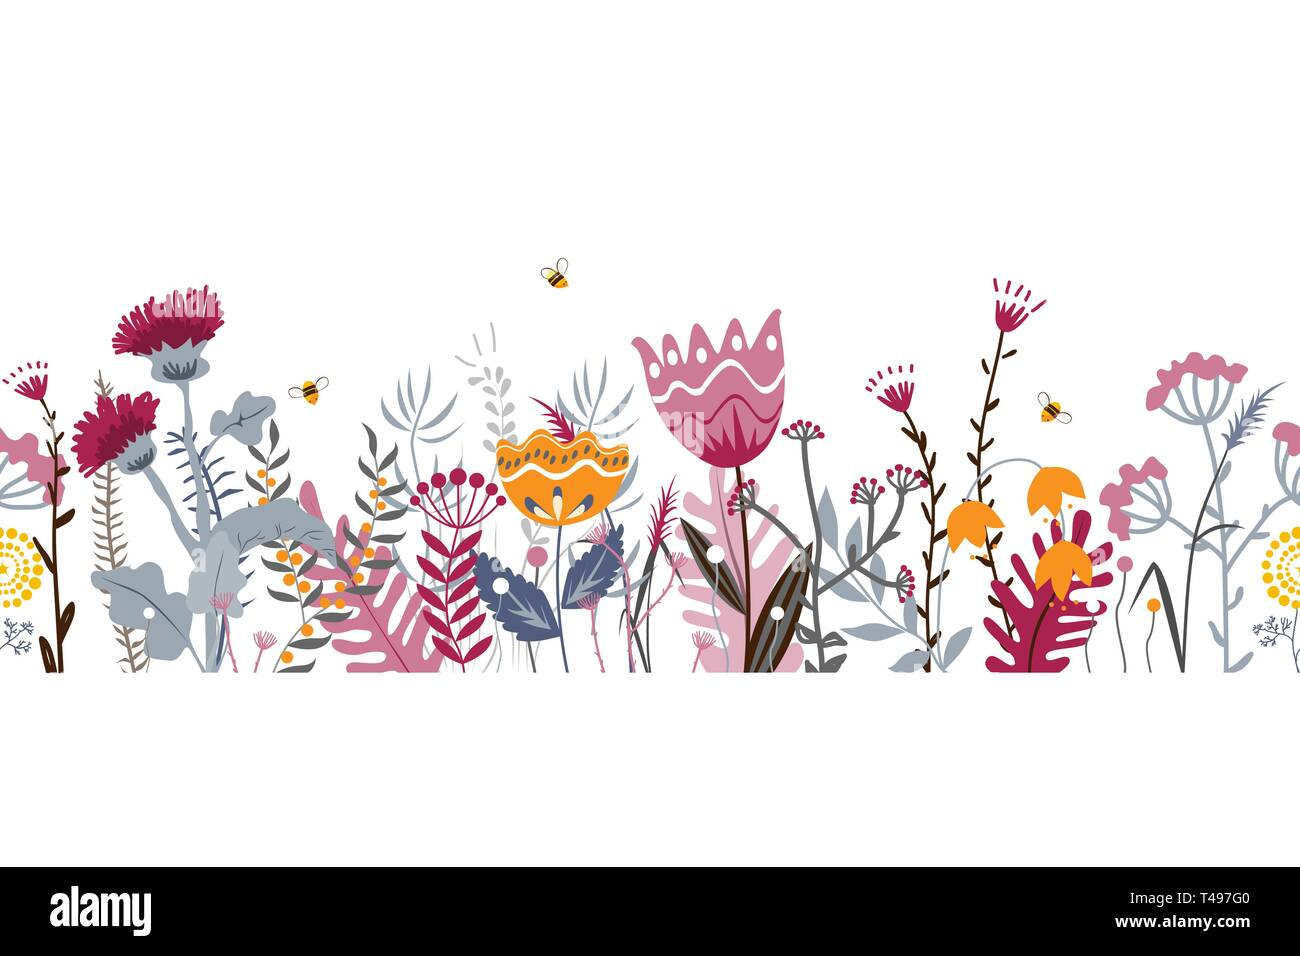 Vector nature seamless background with hand drawn wild herbs, flowers and leaves on white. Doodle style floral illustration - Stock Vector